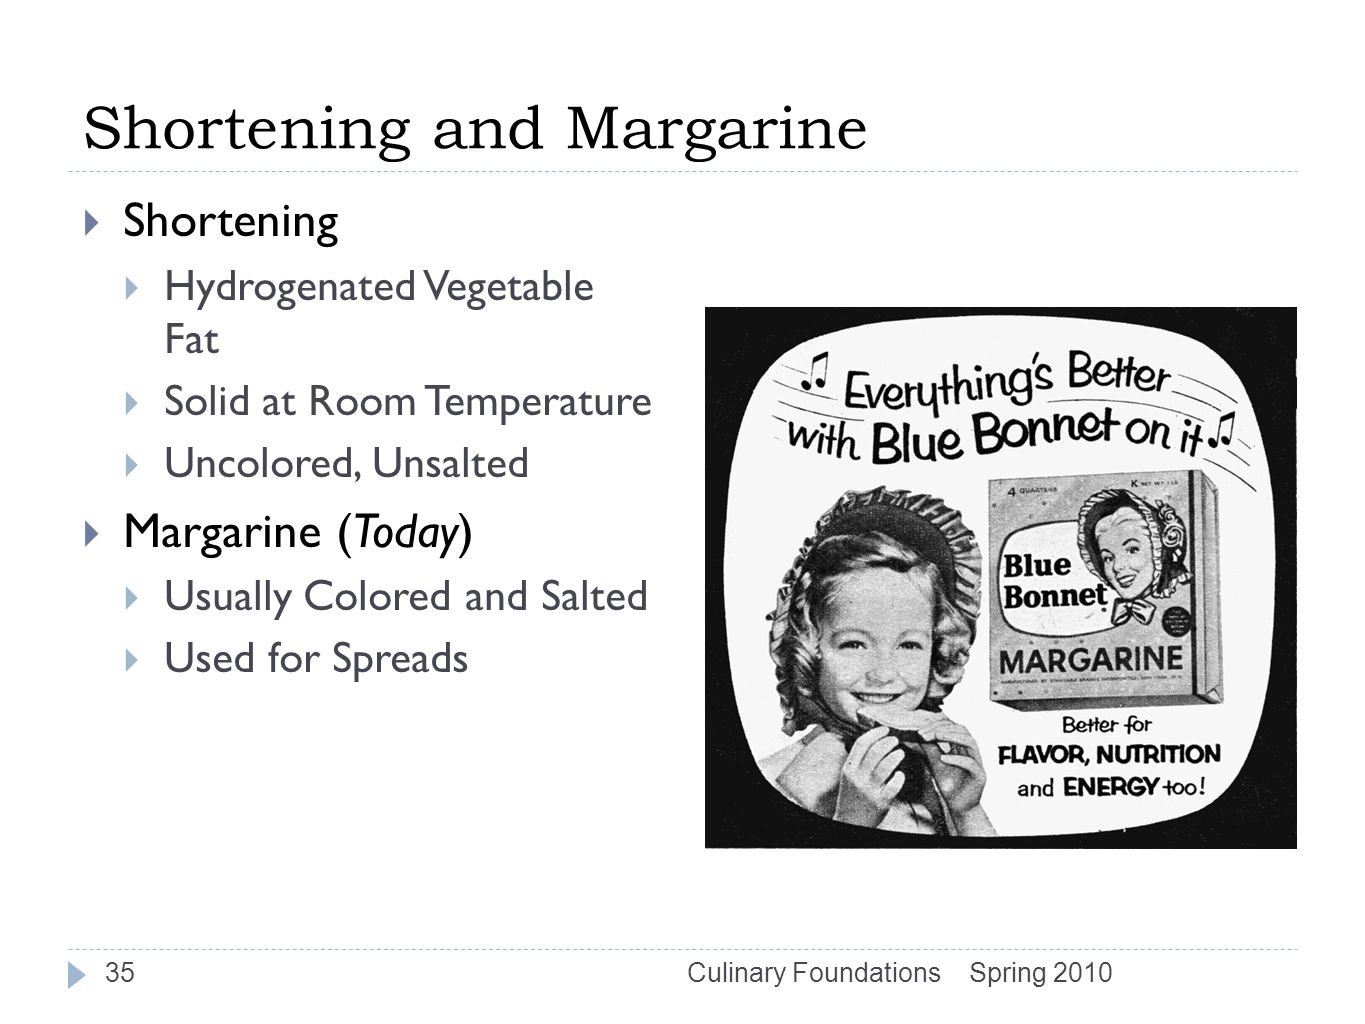 Shortening and Margarine  Shortening  Hydrogenated Vegetable Fat  Solid at Room Temperature  Uncolored, Unsalted  Margarine (Today)  Usually Colored and Salted  Used for Spreads Spring 2010Culinary Foundations35